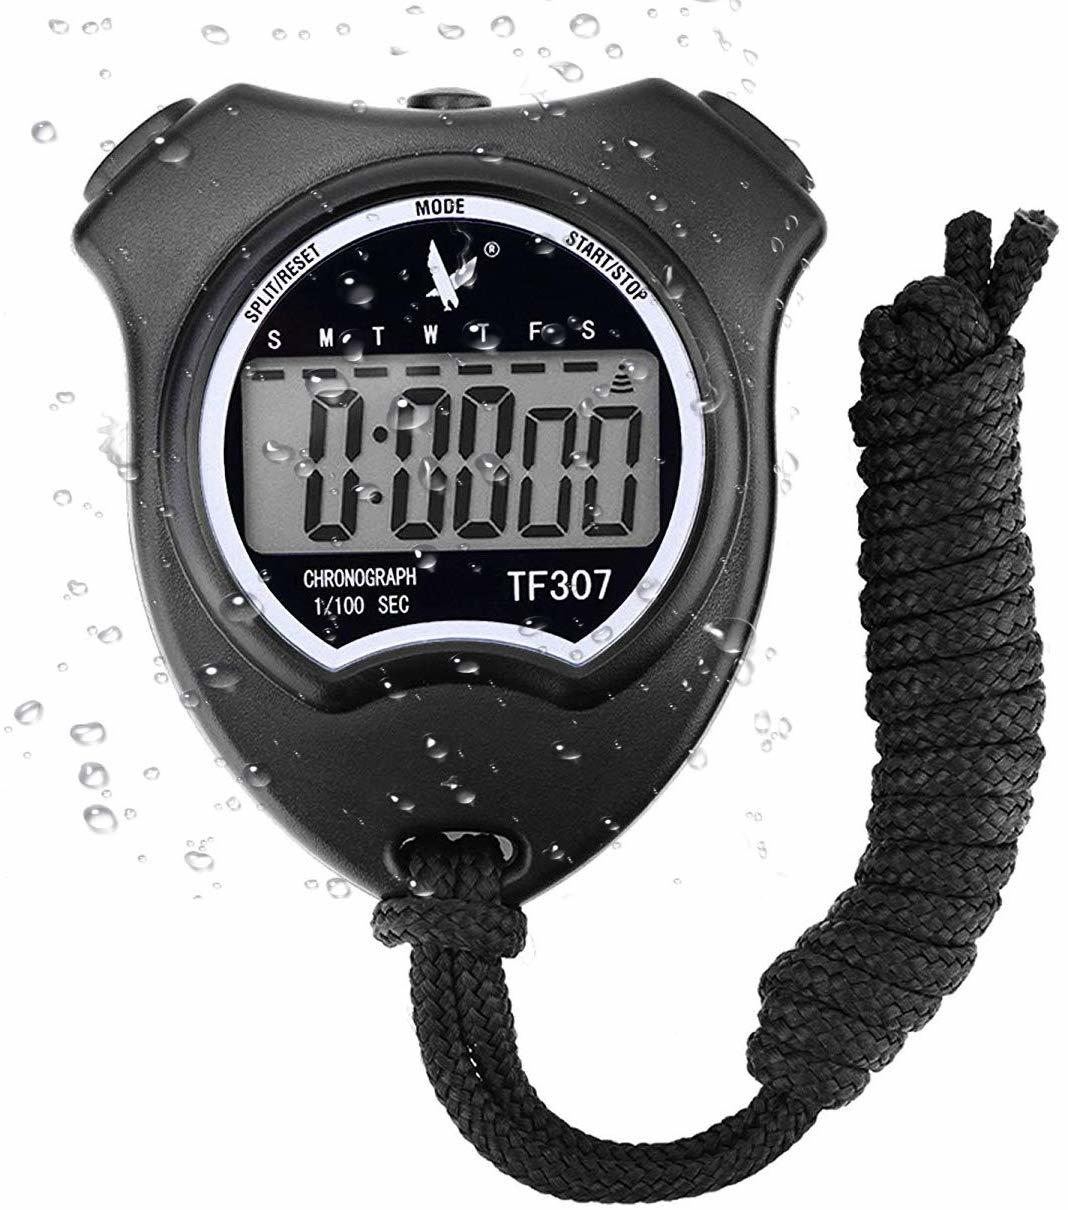 gifts for pt clients stopwatch image